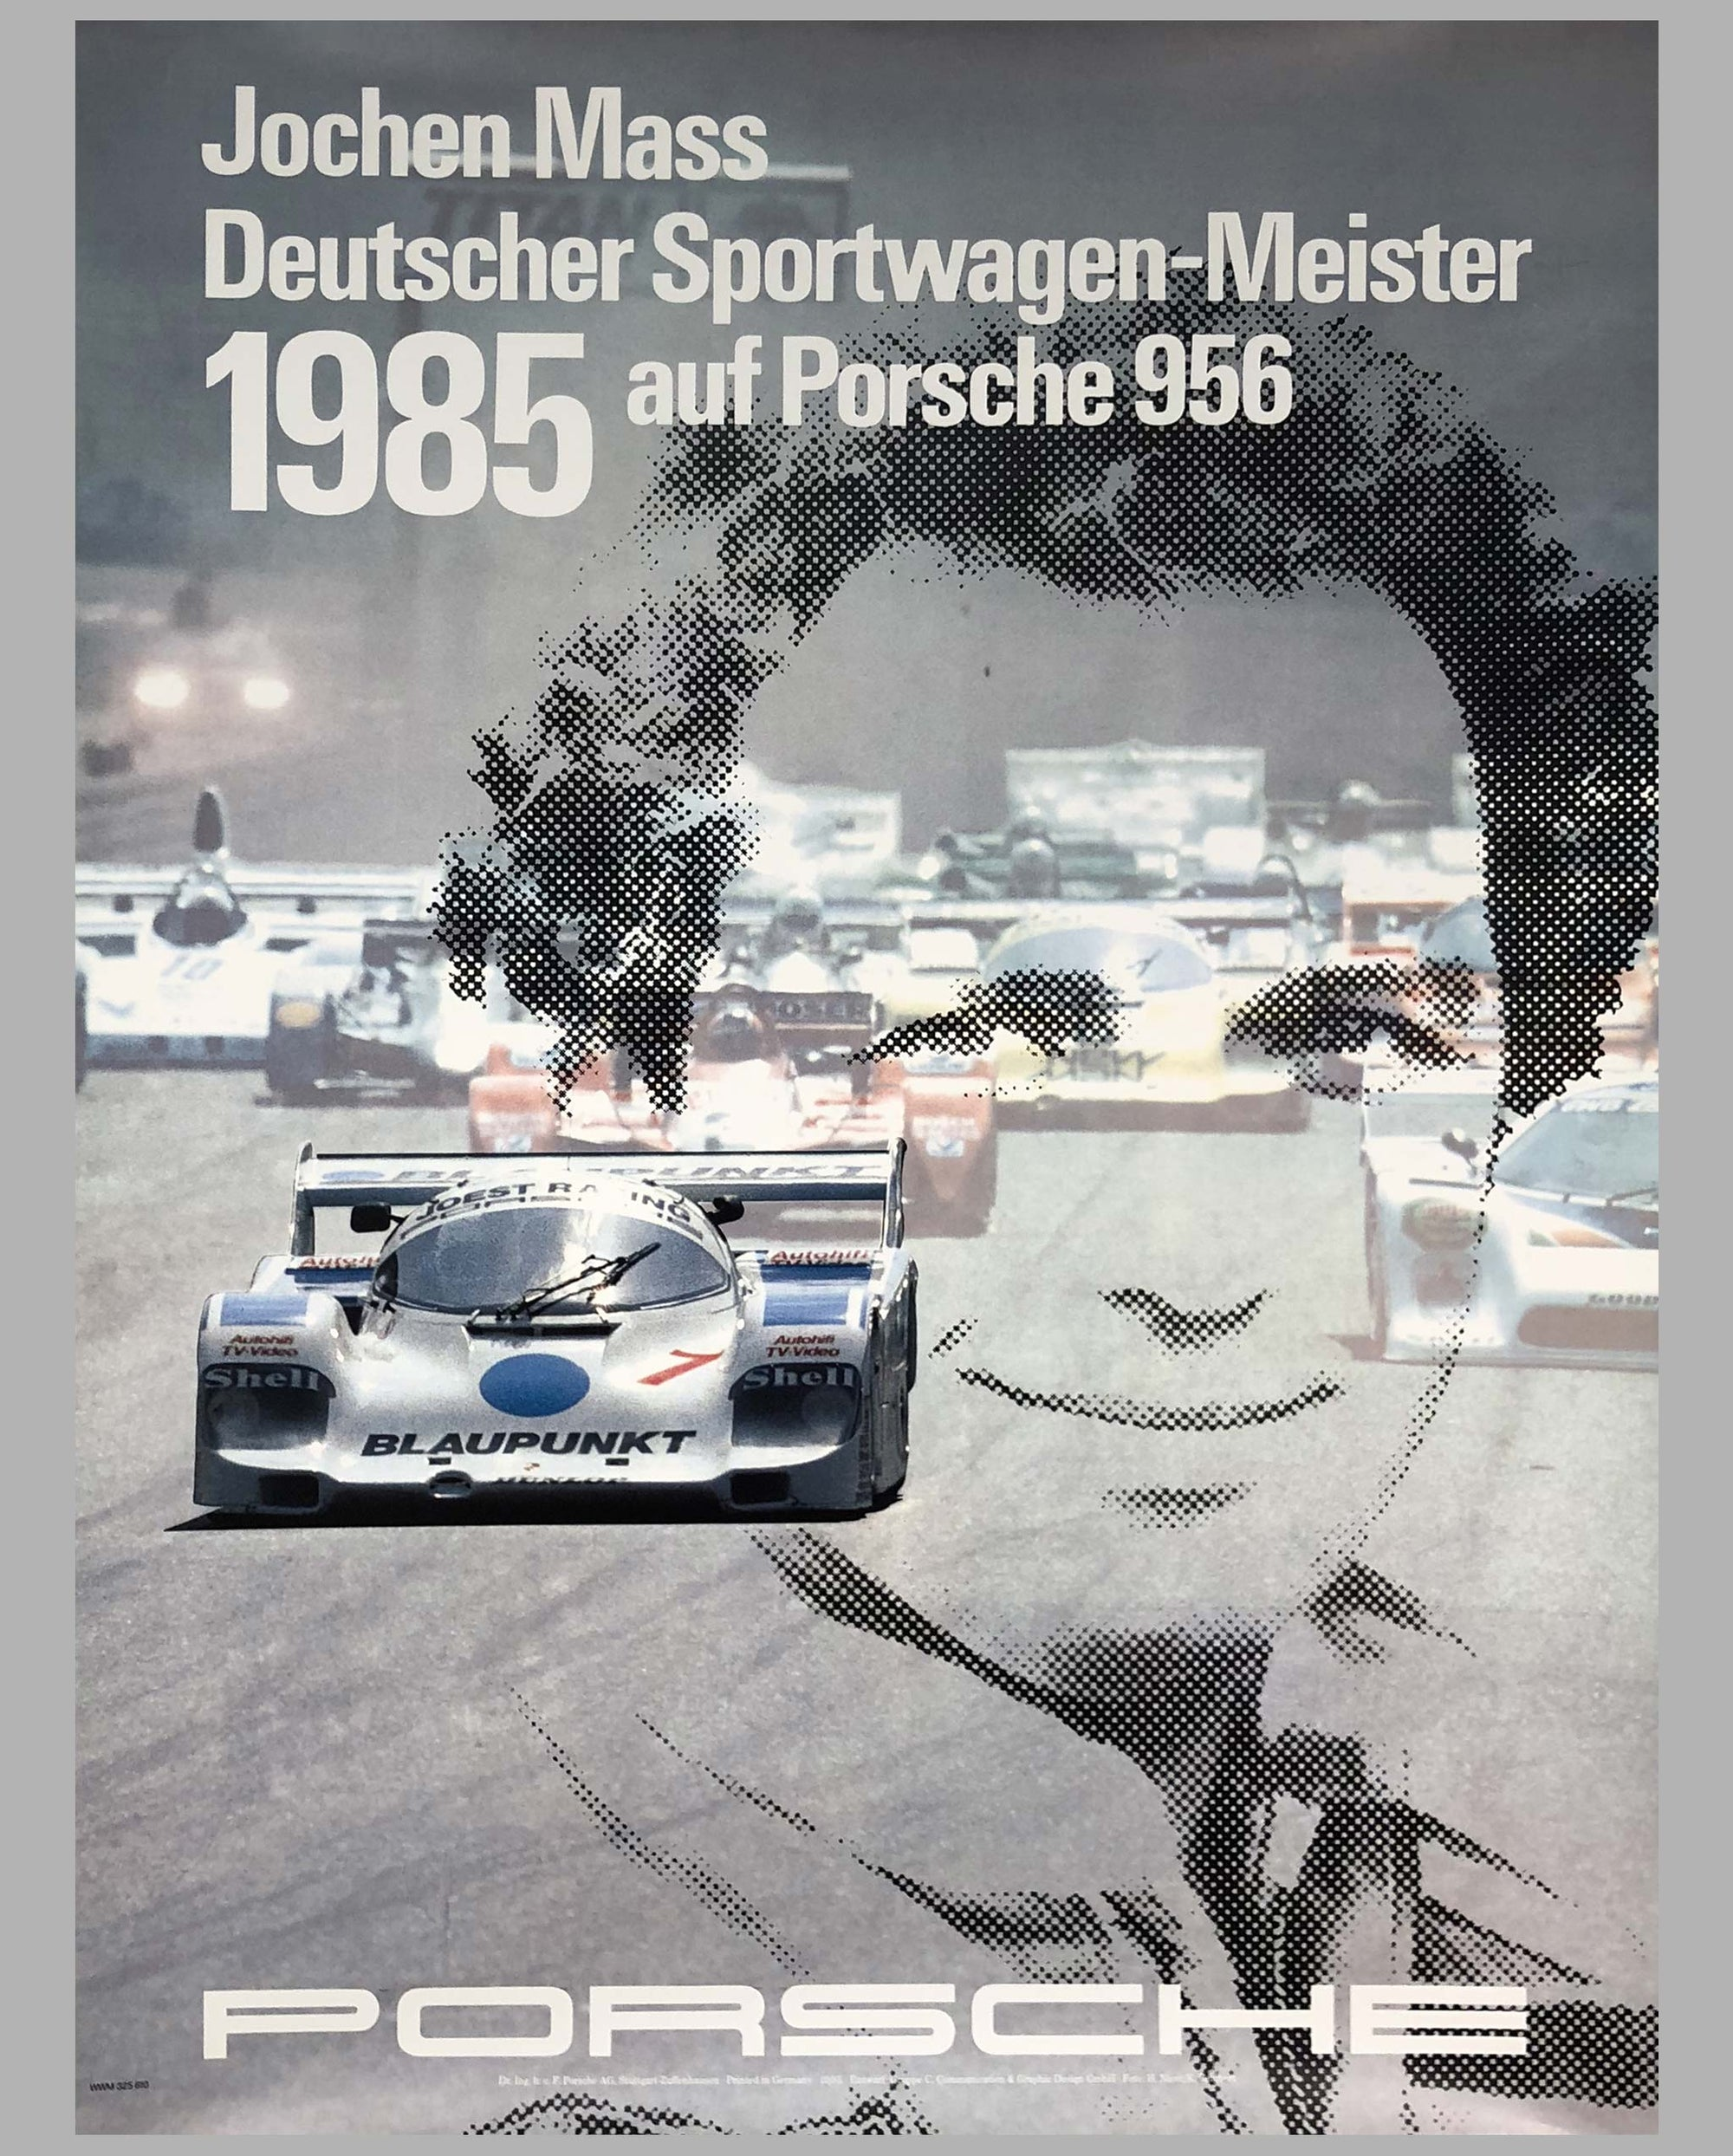 Porsche Factory Poster Jochen Mass German Endurance Champion 1985